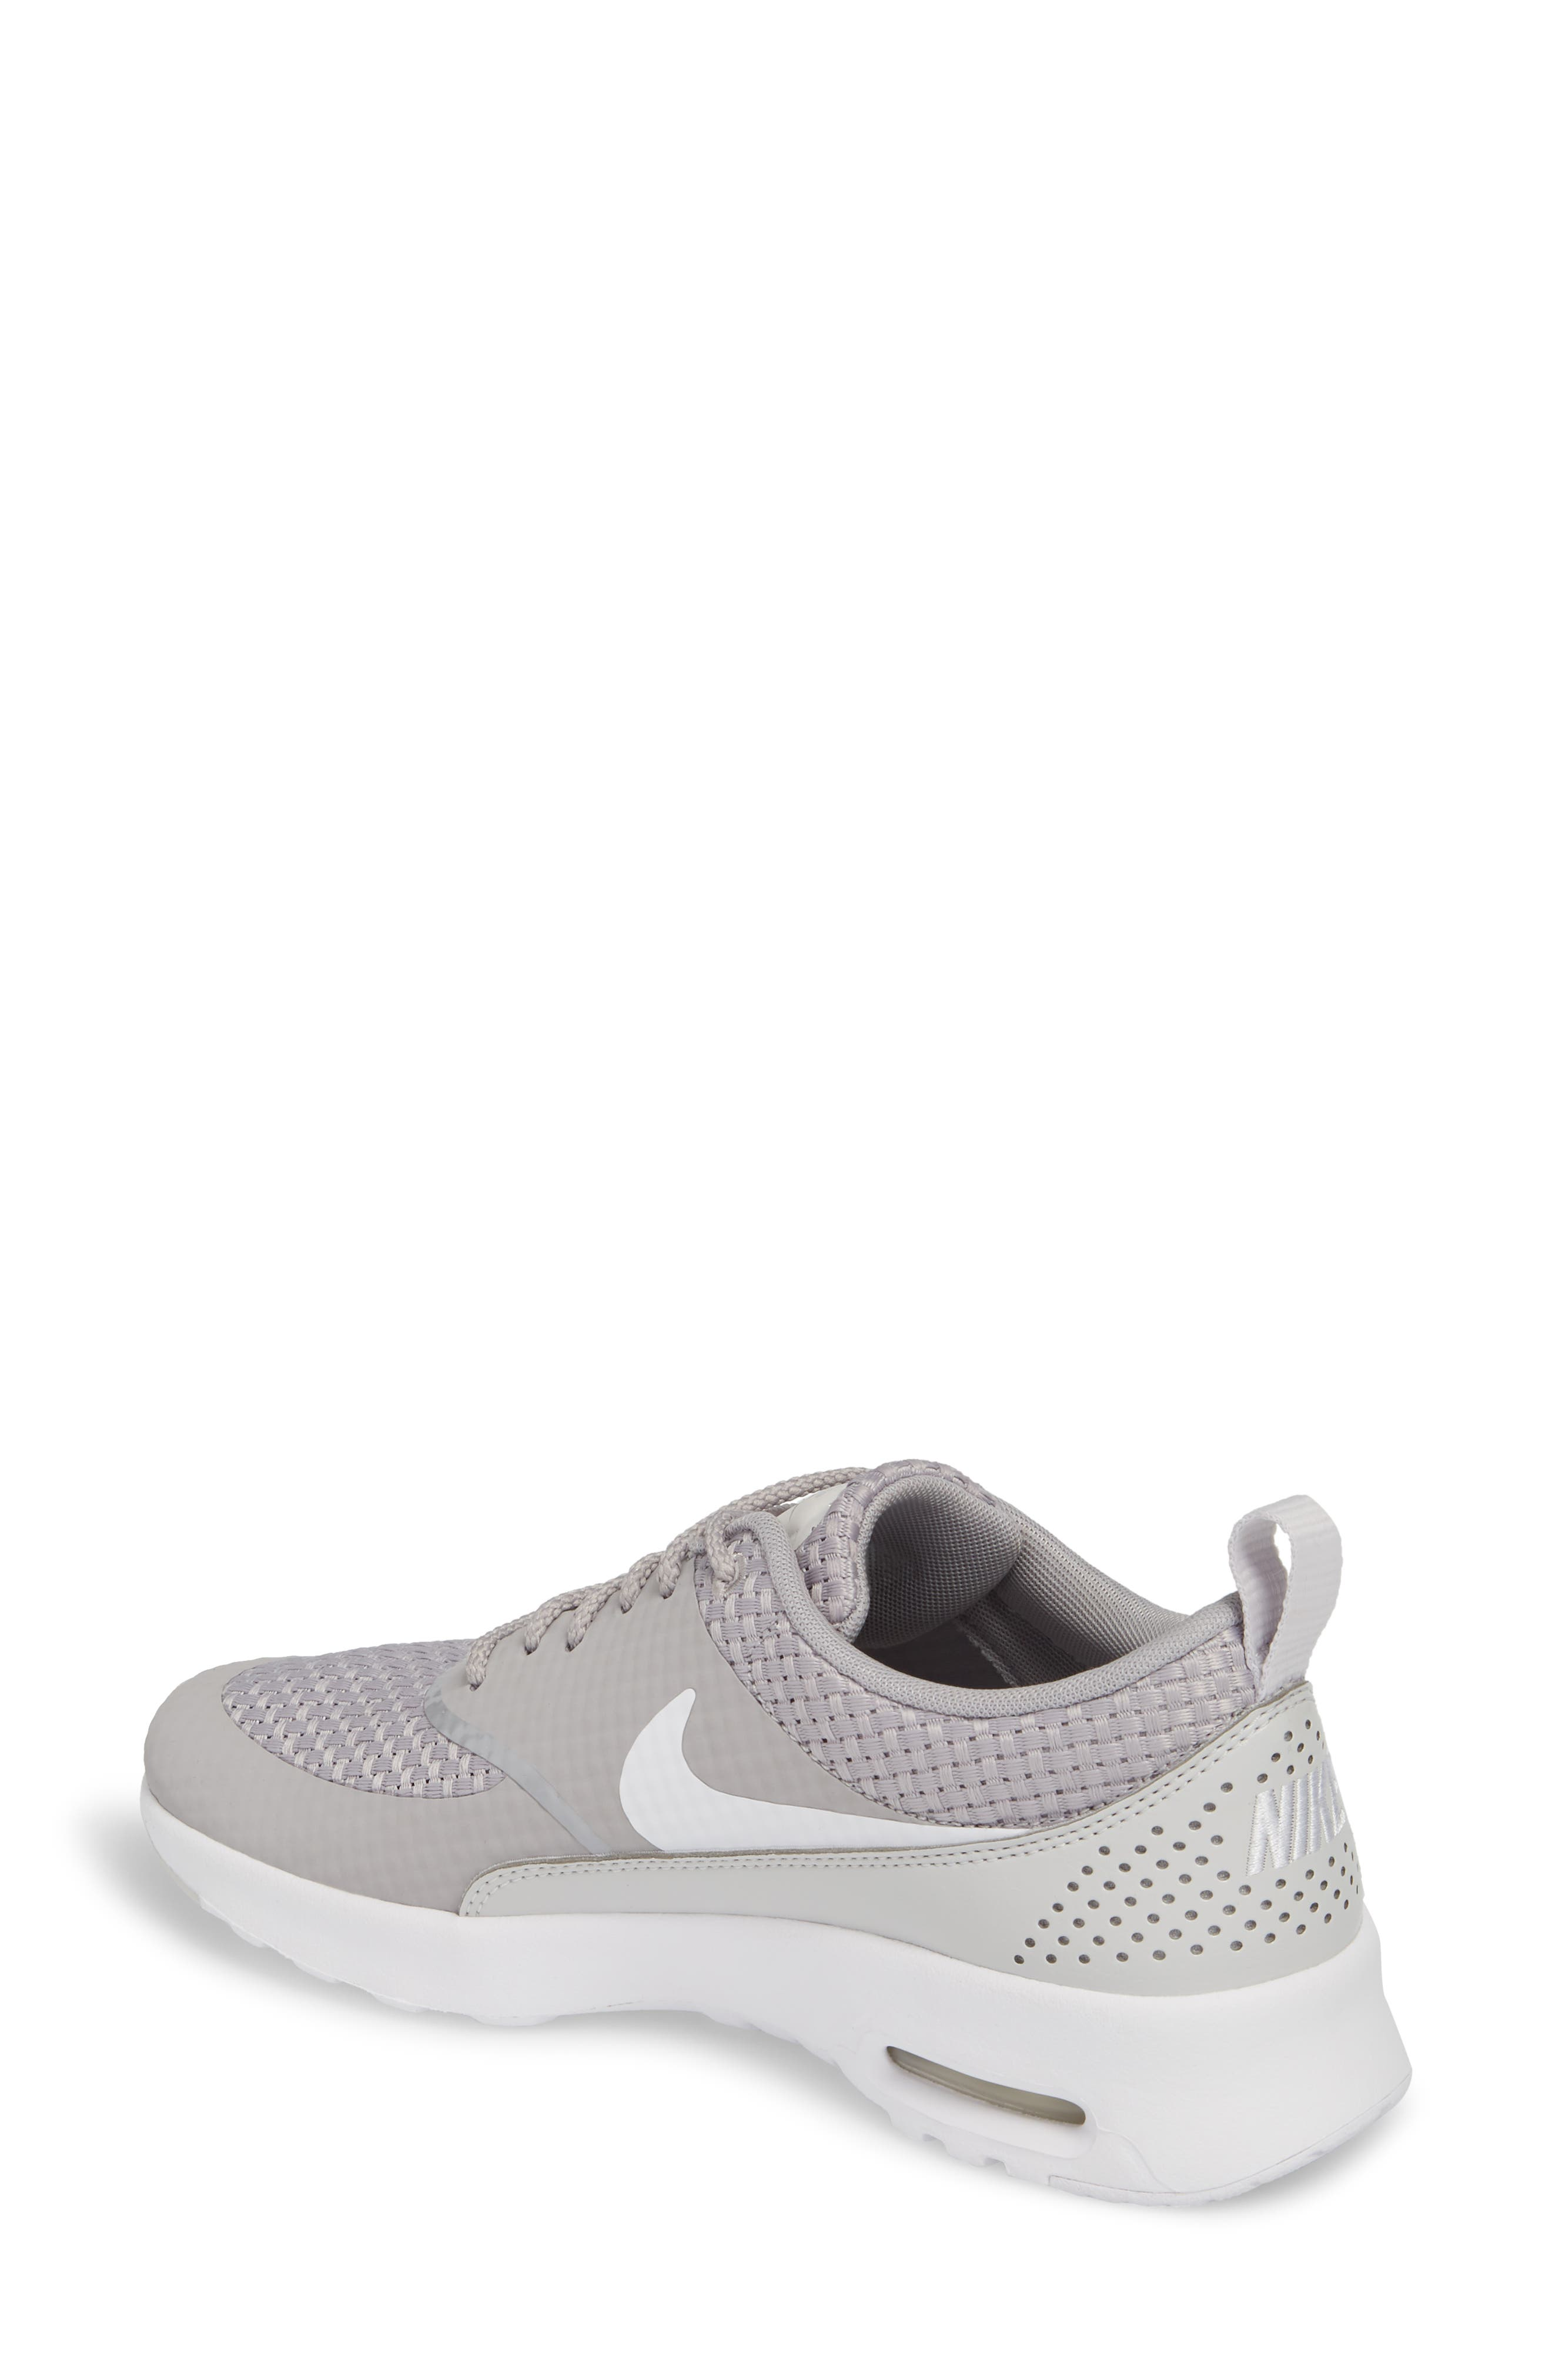 Air Max Thea Sneaker,                             Alternate thumbnail 2, color,                             Atmosphere Grey/ White